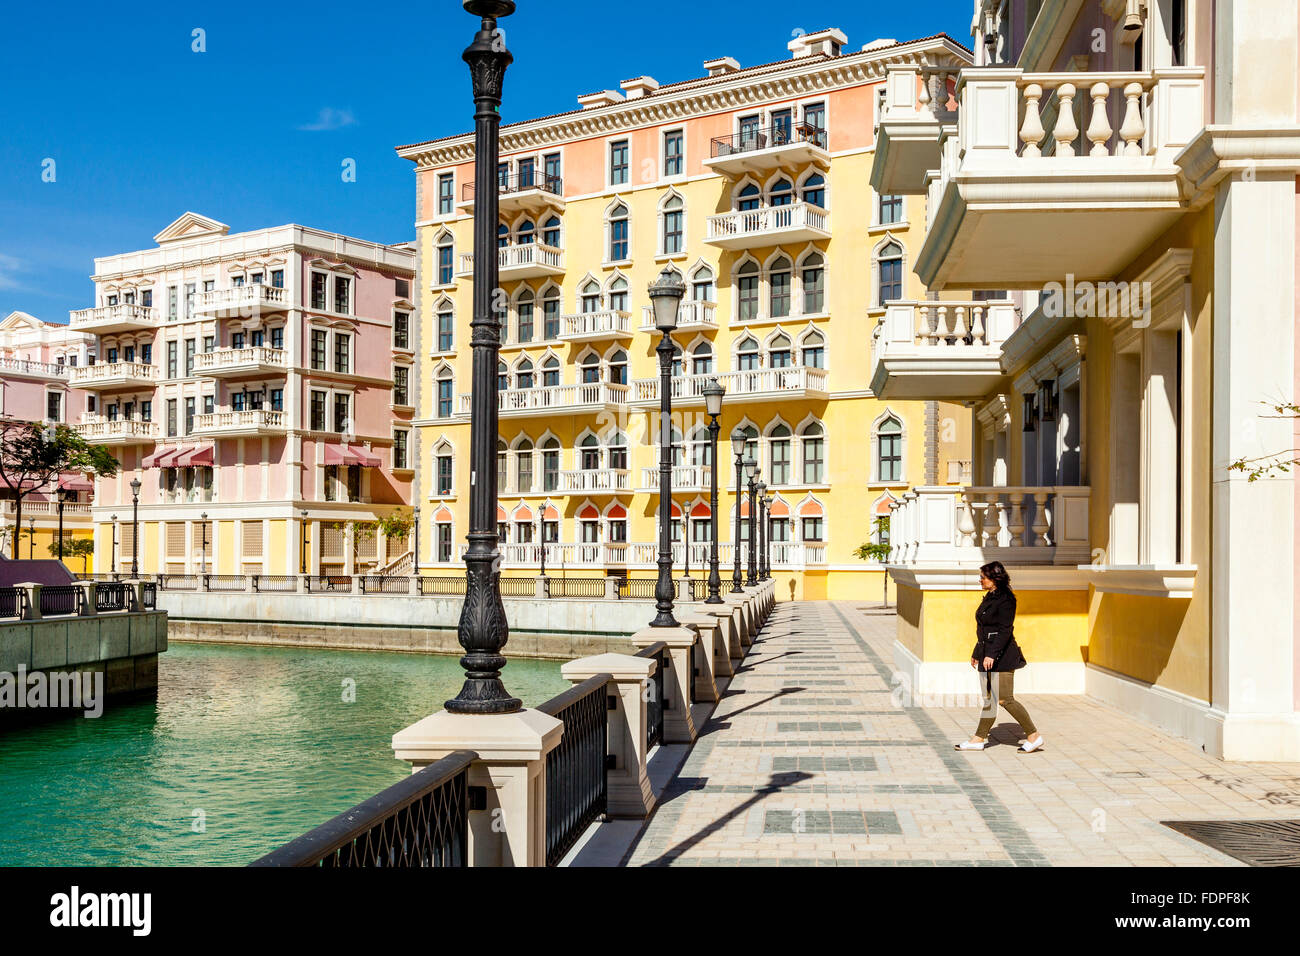 Colourful Venetian Style Houses At Qanat Quartier The Pearl Doha Stock Photo 94537315 Alamy